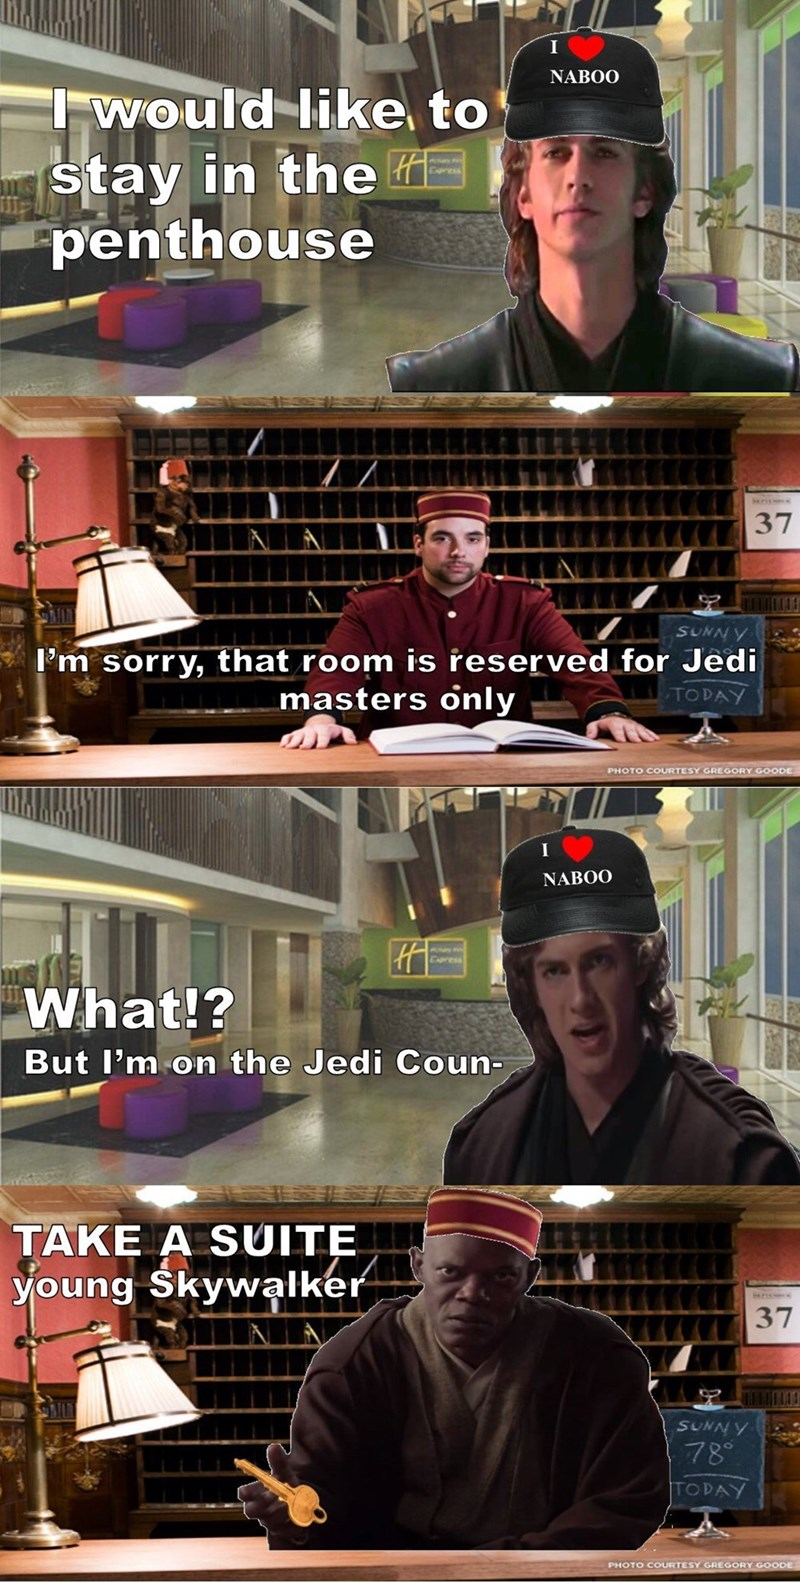 Font - NABOO Iwould like to stay in the #E penthouse Cxpress 37 SUNNY I'm sorry, that room is reserved for Jedi masters only TODAY PHOTO COURTESY GREGORY GOODE I NABOO Cpress What!? But l'm on the Jedi Coun- TAKE A SUITE young Skywalker SUNNY 78° TODAY PHOTO COURTESY GREGORY GOODE